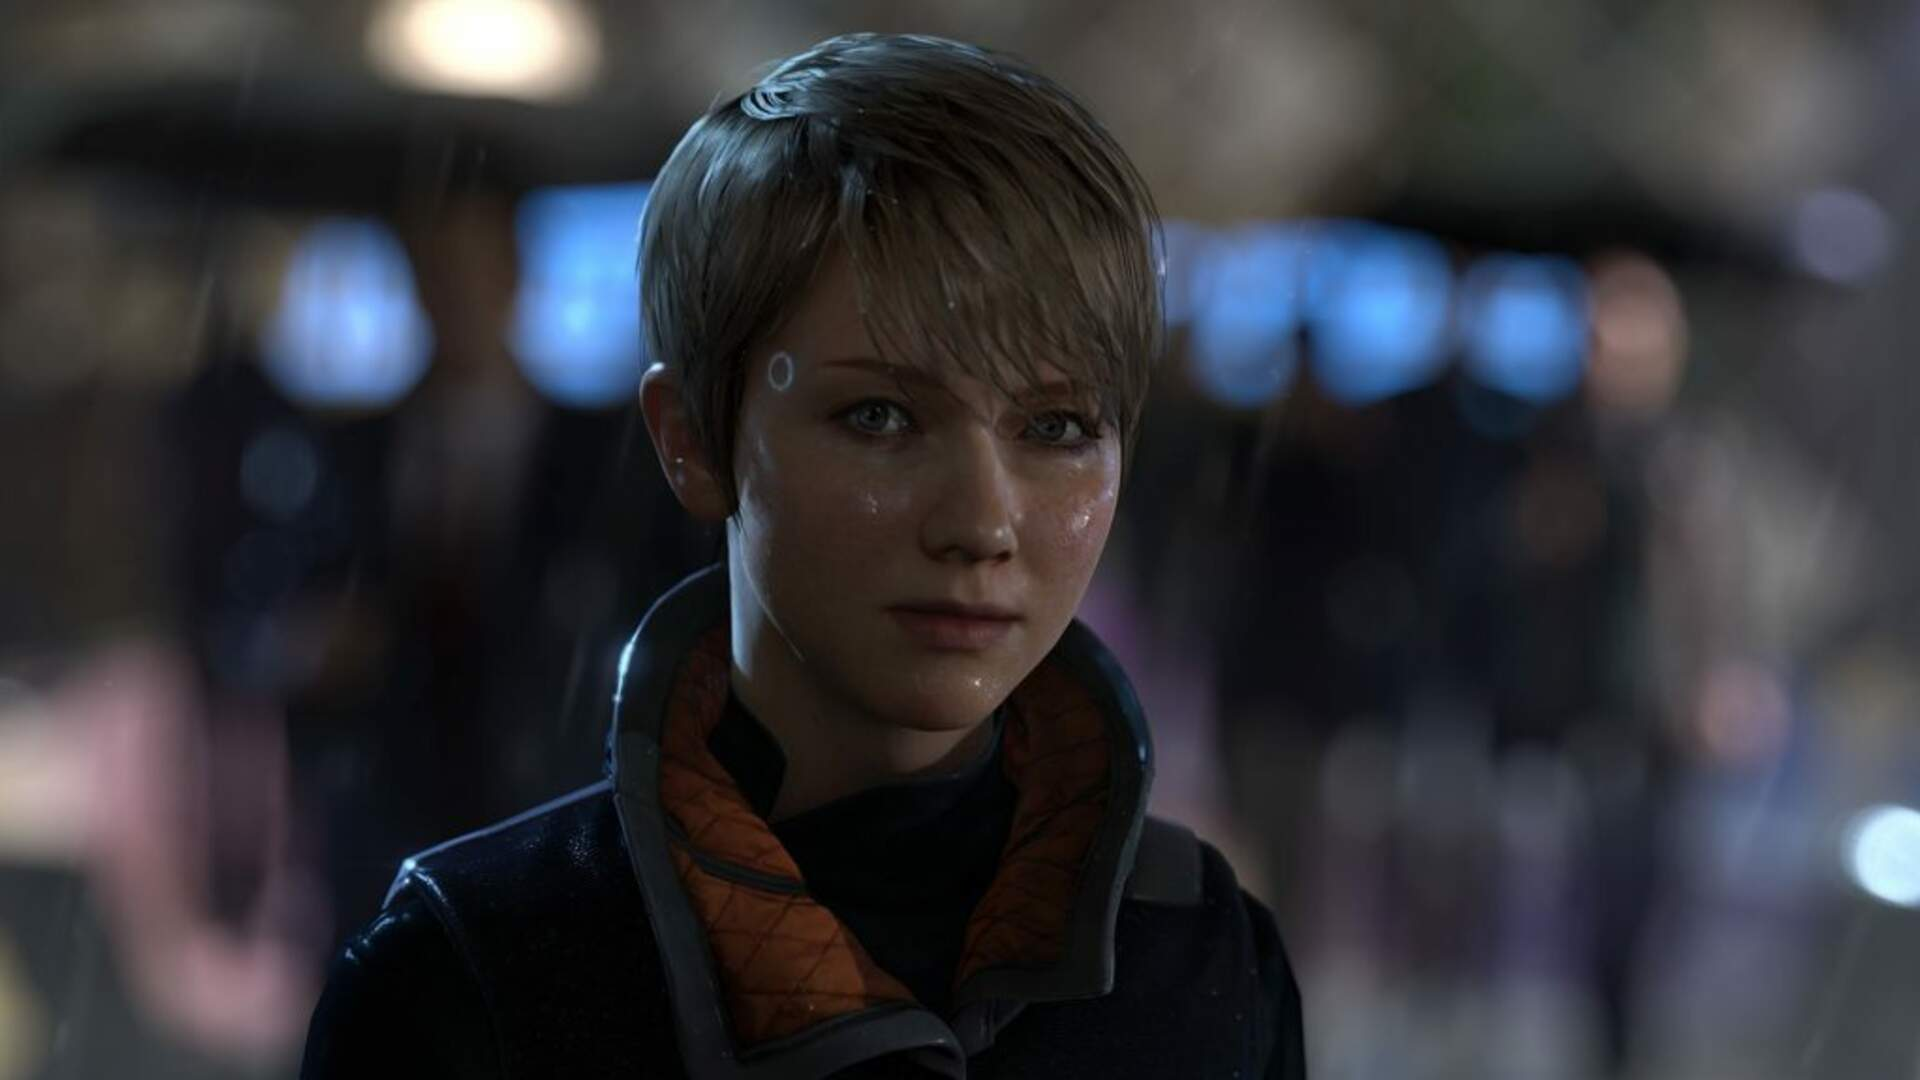 David Cage Accused of Fostering a Toxic and Inappropriate Workplace at Quantic Dream